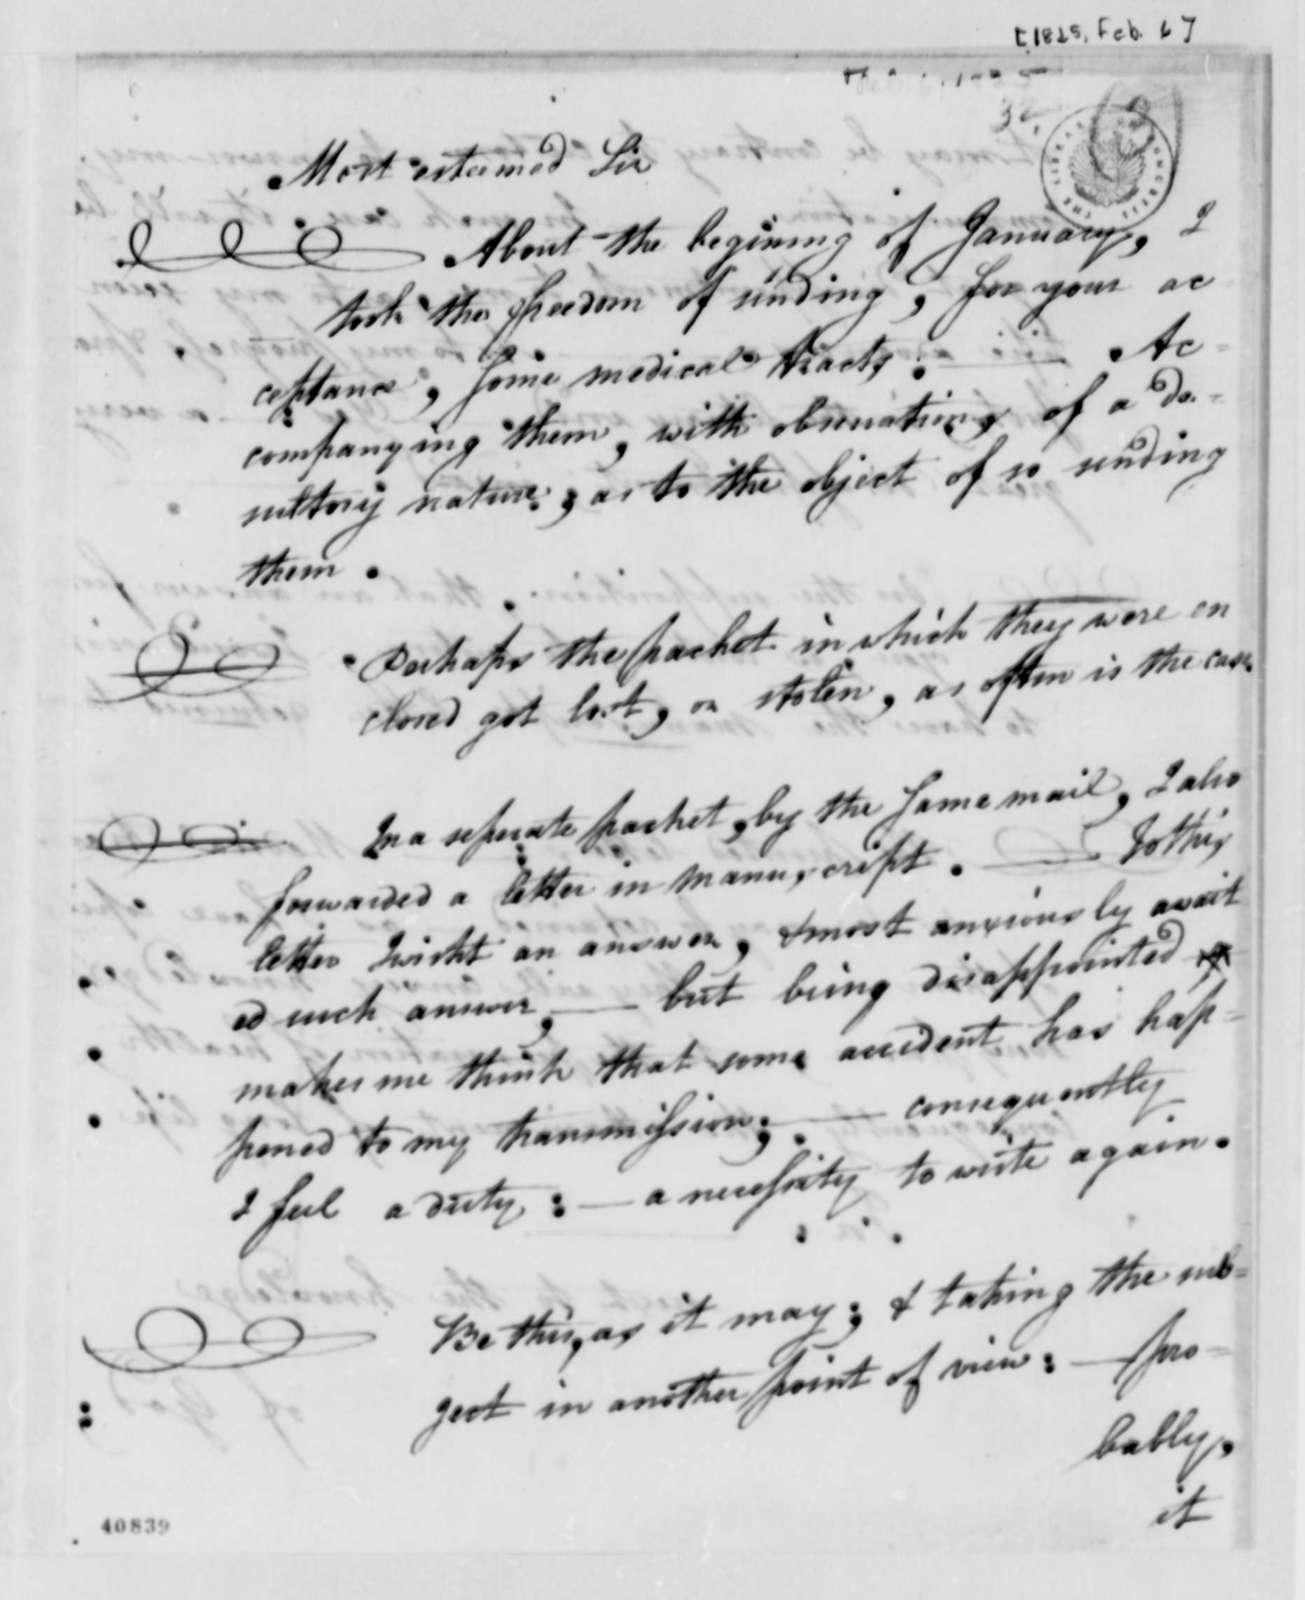 Daniel L. Green to Thomas Jefferson, February 6, 1825